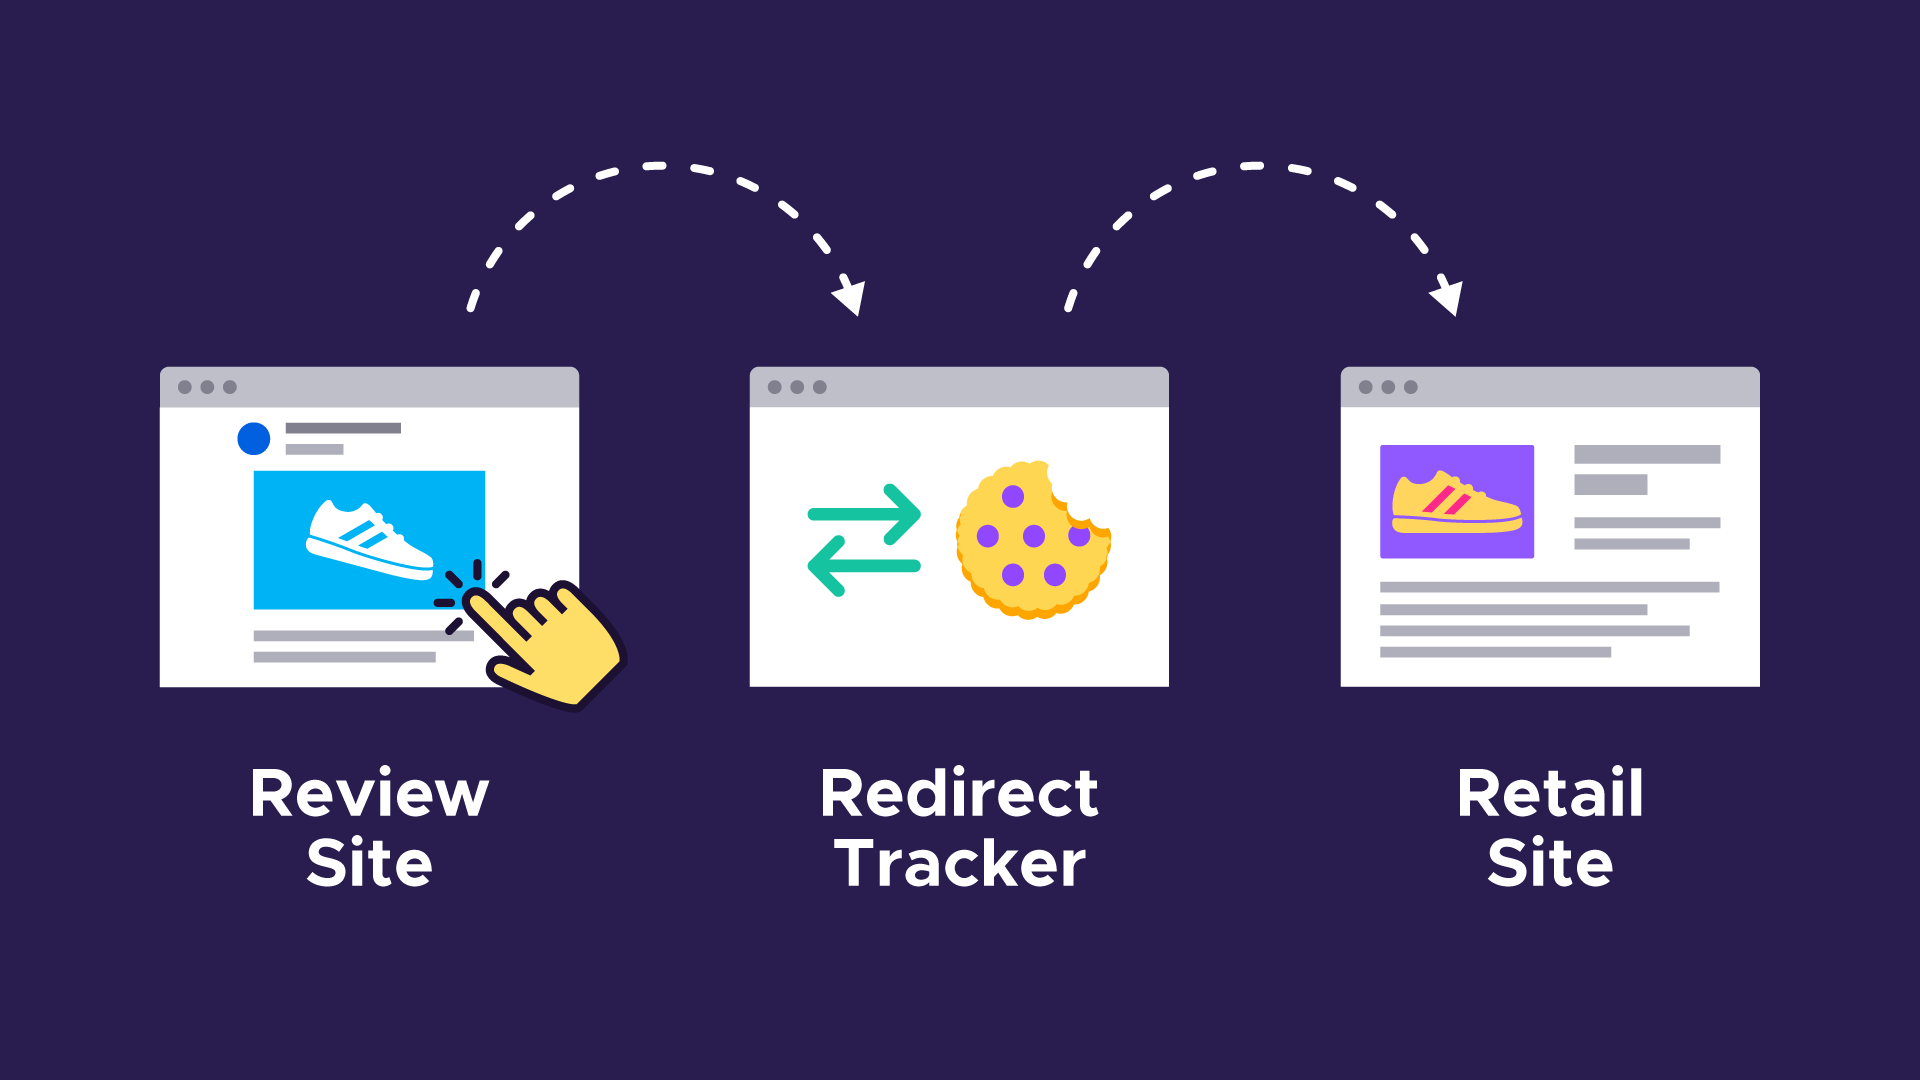 A visual example of redirect tracking: a review site redirects to the redirect tracker, which redirects to a retail site.